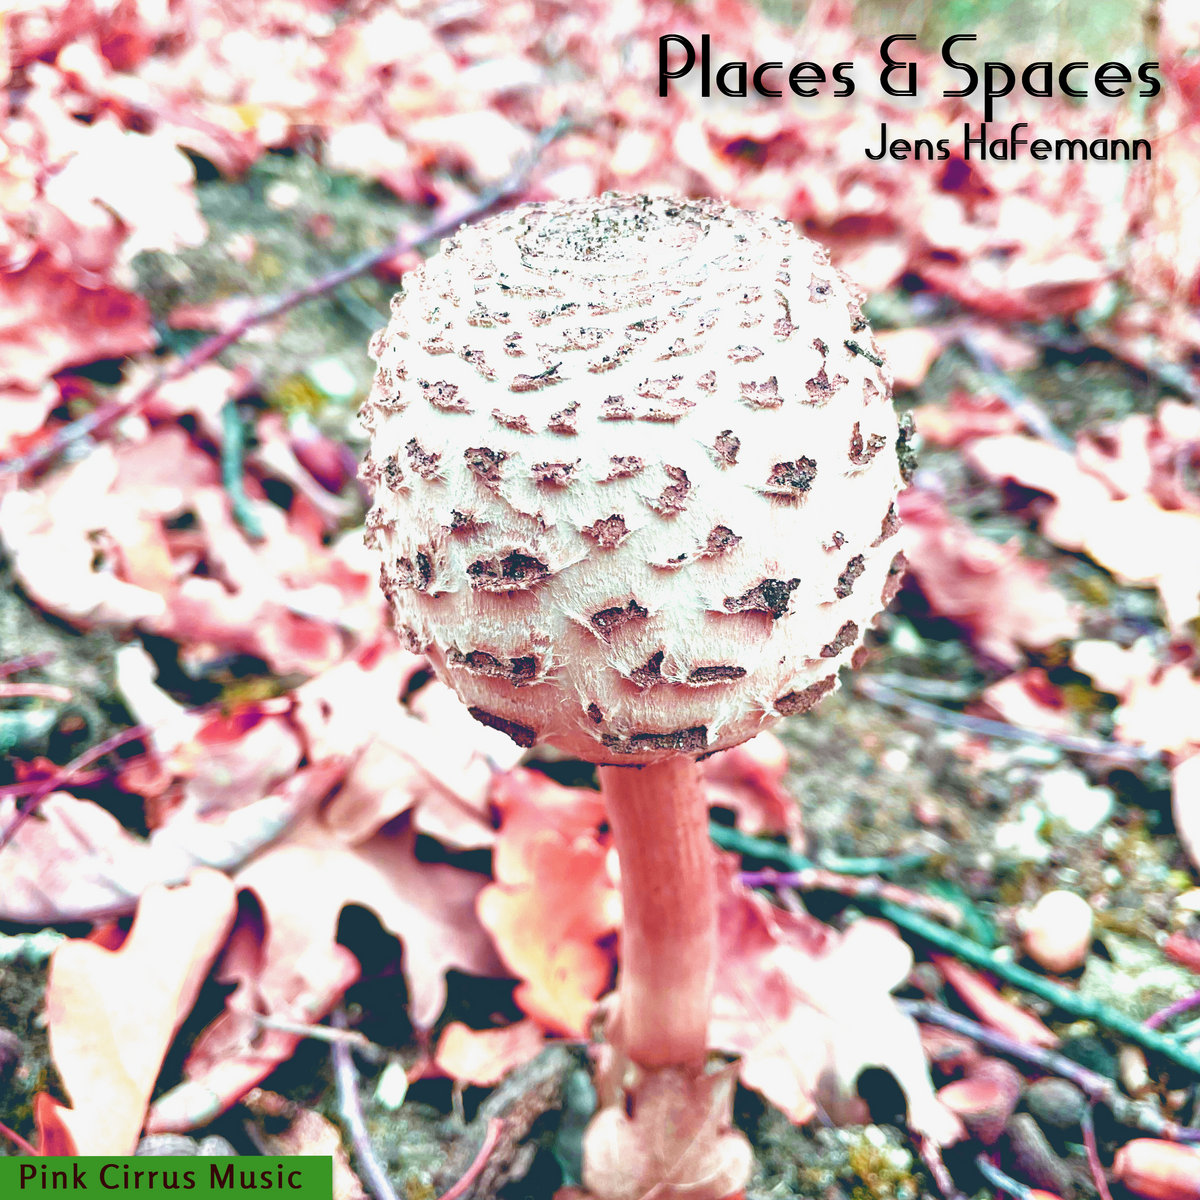 Places & Spaces, by Jens Hafemann